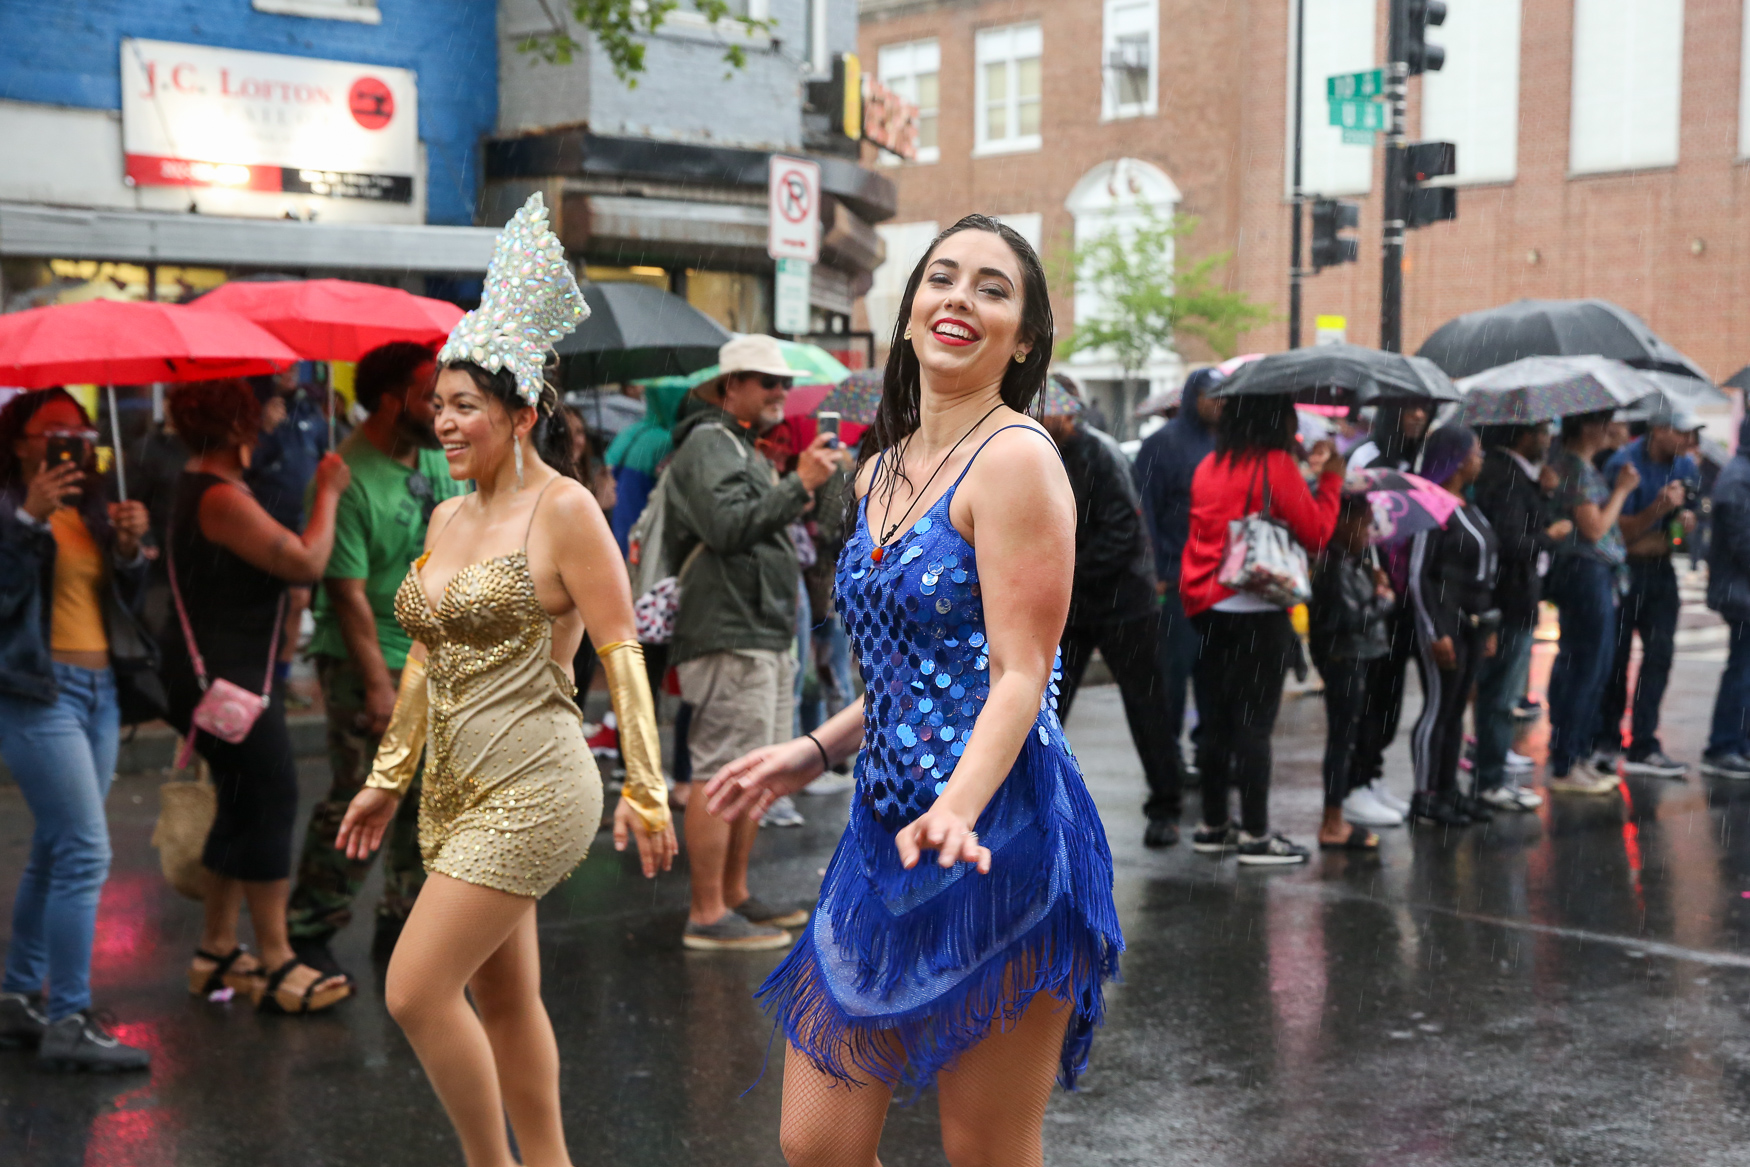 Rain couldn't stop the music as the sixth annual Funk Parade made its way around U Street on May 11. The Funk Parade featured local musicians and performance groups, but the fun didn't stop there - parties and music acts sprung up around northwest in honor of D.C.'s rich musical history.{ } The parade took on a special significance in light of the #DontMuteDC movement, which aims to preserve D.C.'s culture in the face of rapidly shifting demographics. (Amanda Andrade-Rhoades/DC Refined)